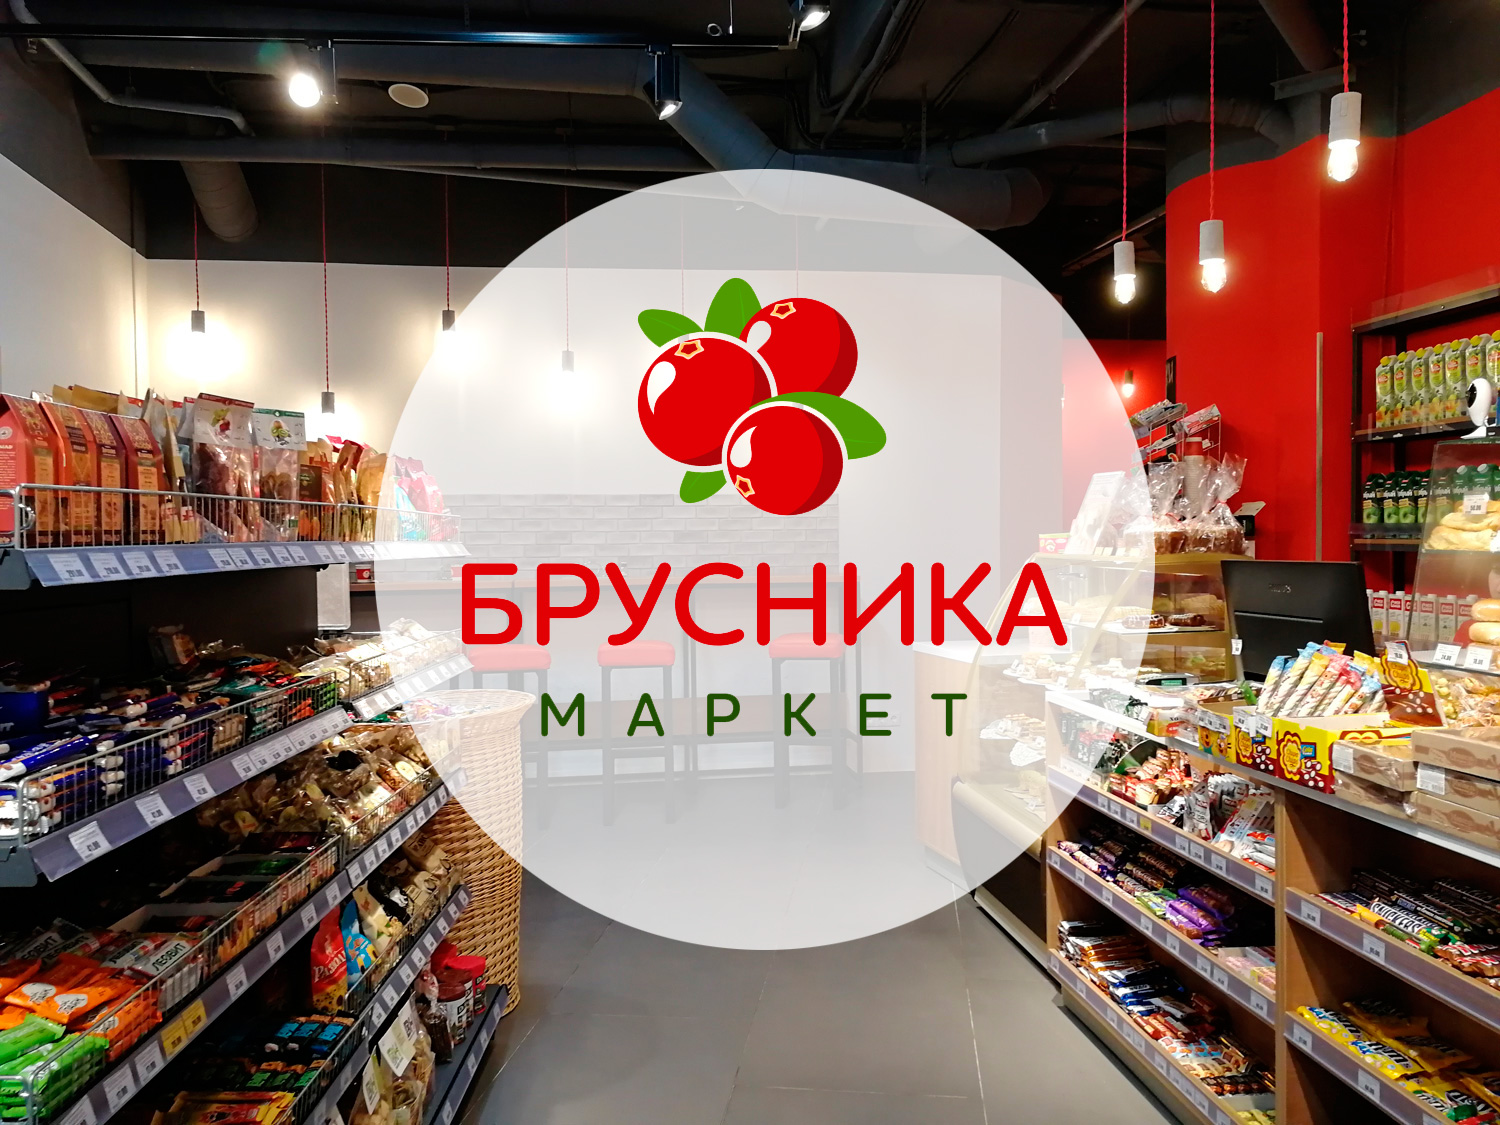 ДИЗАЙН МИНИ МАГАЗИНА БРУСНИКА МАРКЕТ Ельцин Центр Екатеринбург Dulisov design Mini-market Ekaterinburg дизайн студия интерьера Reteil